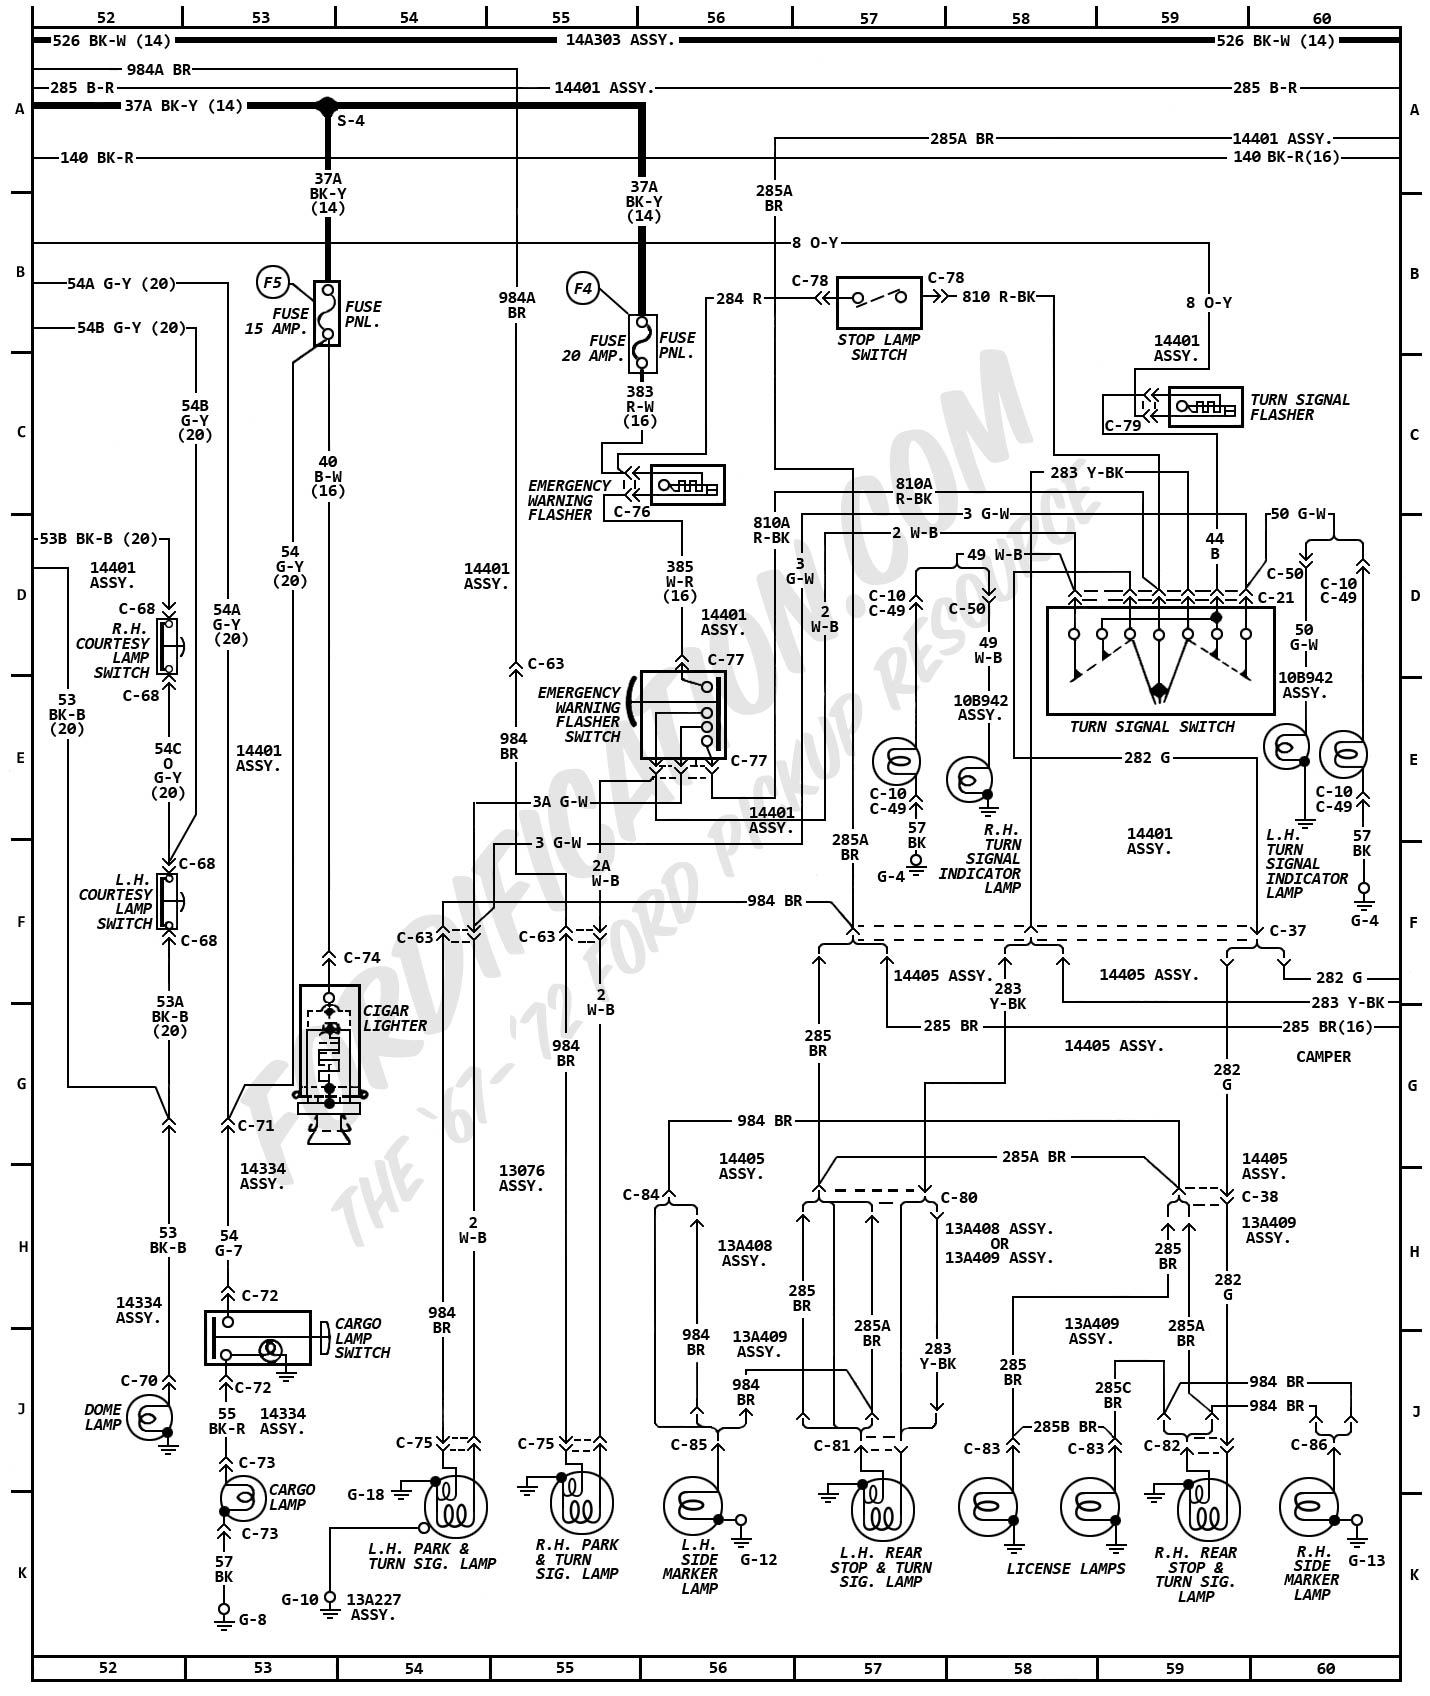 72 Ford Wiring Diagrams Diagram Online Fox Mustang 1972 F 150 Electrical 2003